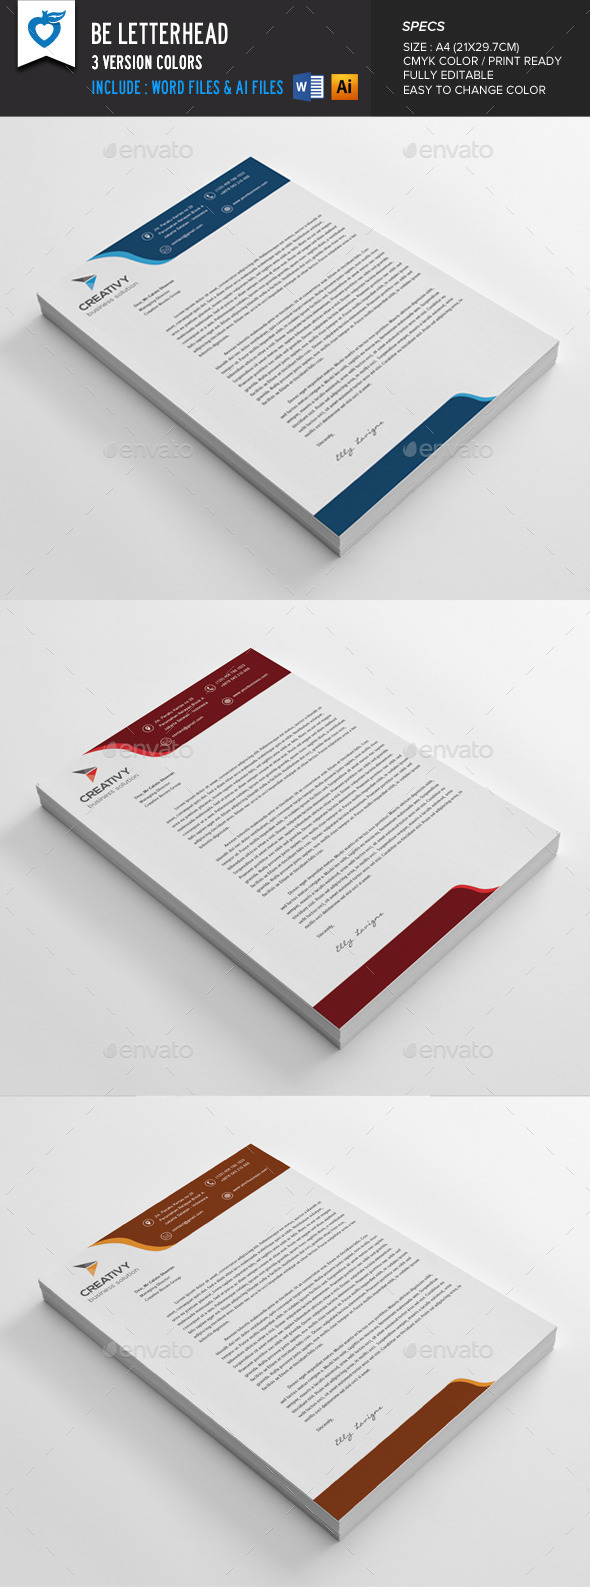 Be Letterhead - Stationery Print Templates